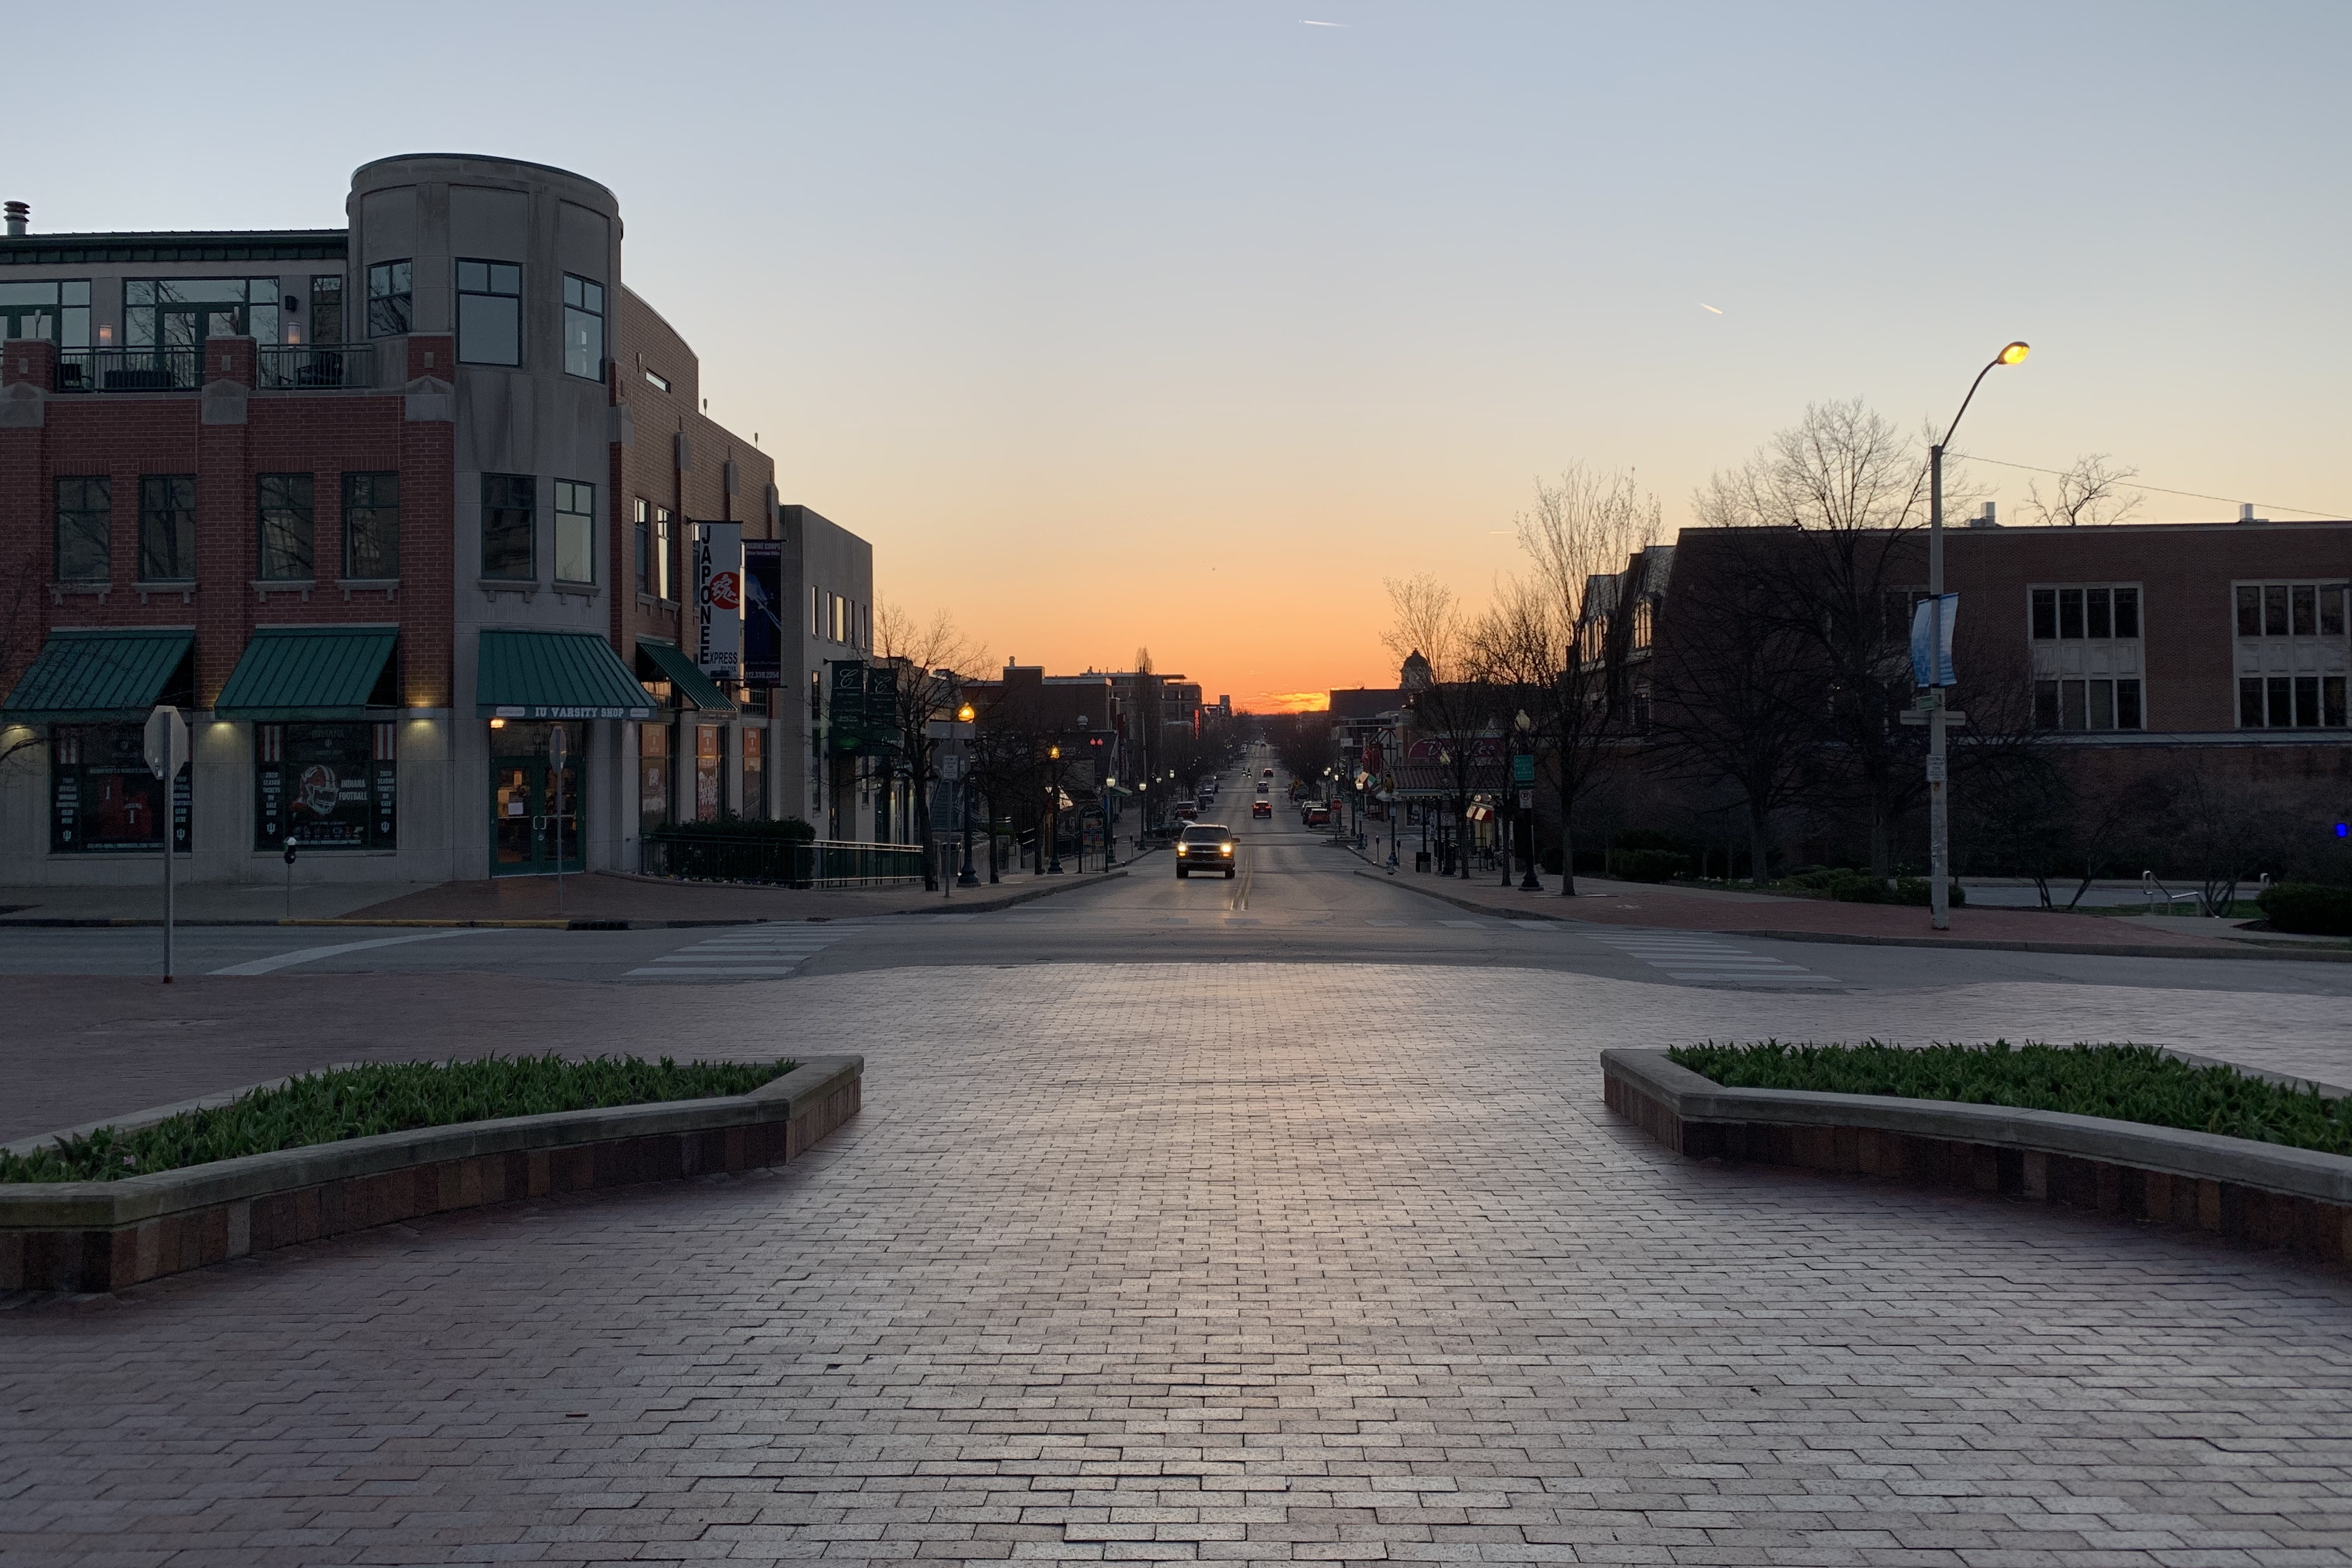 Looking west down Kirkwood Ave from IU Bloomington's Sample Gates the day before Gov. Holcomb's coronavirus stay-at-home order went into effect.